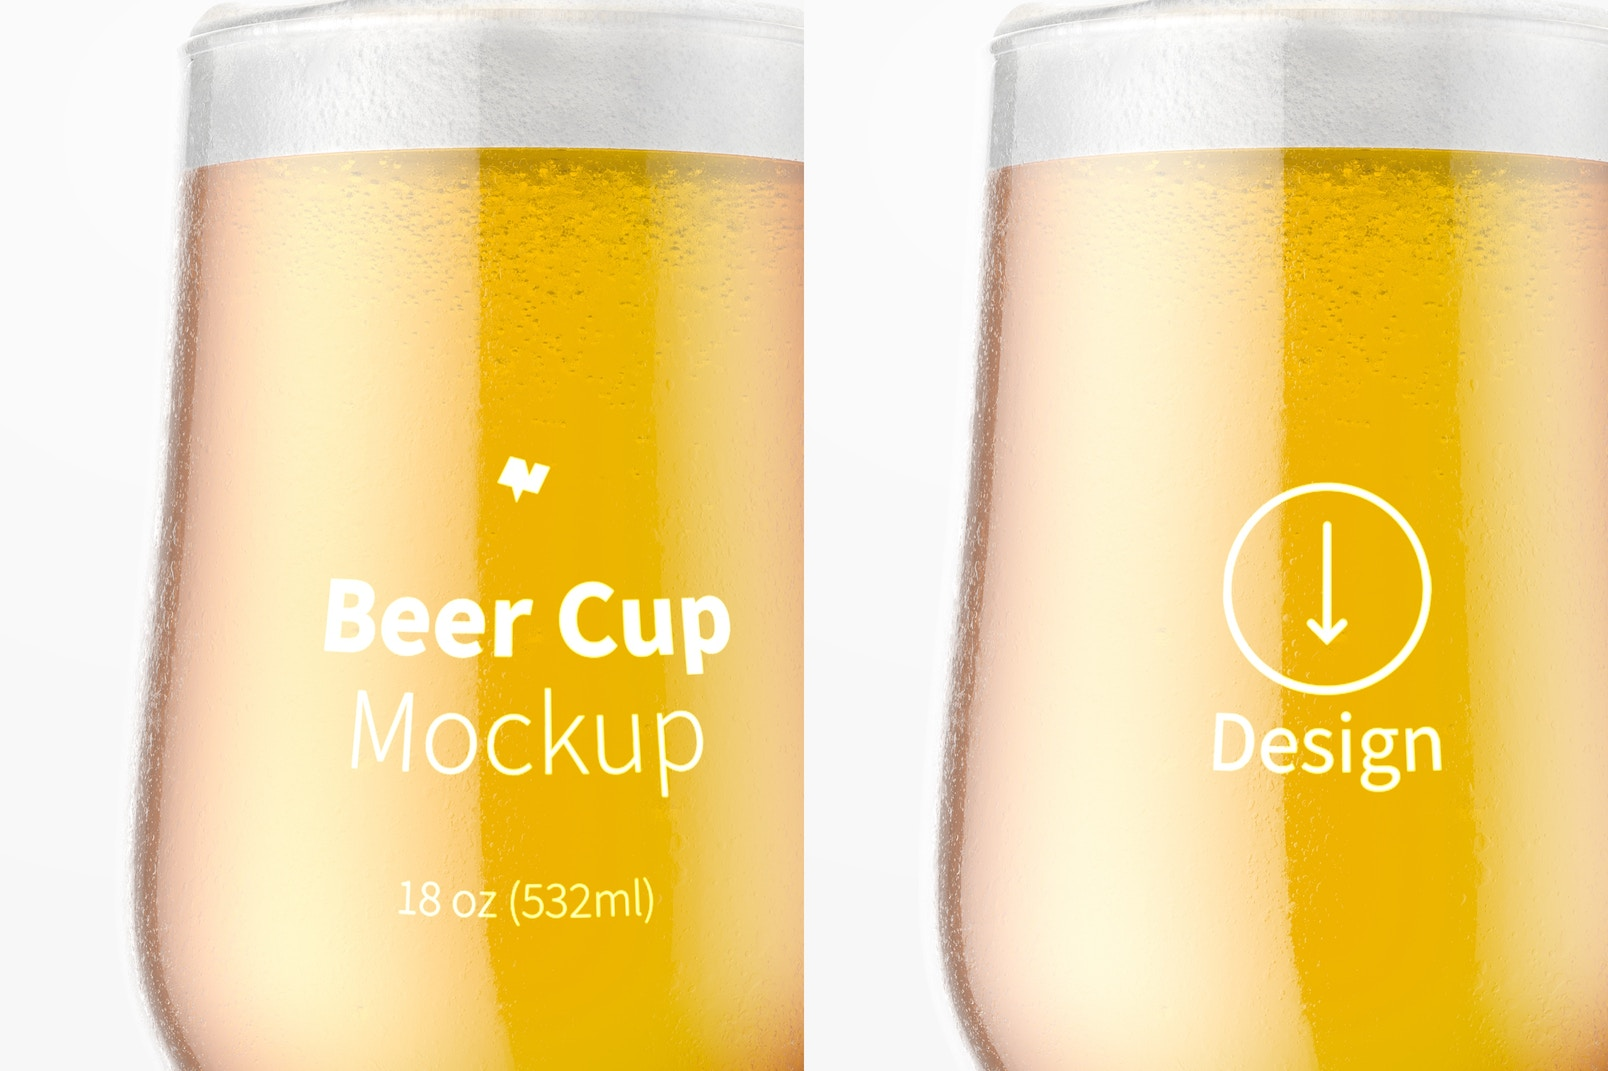 18 oz Glass Beer Cup Mockup, Close Up